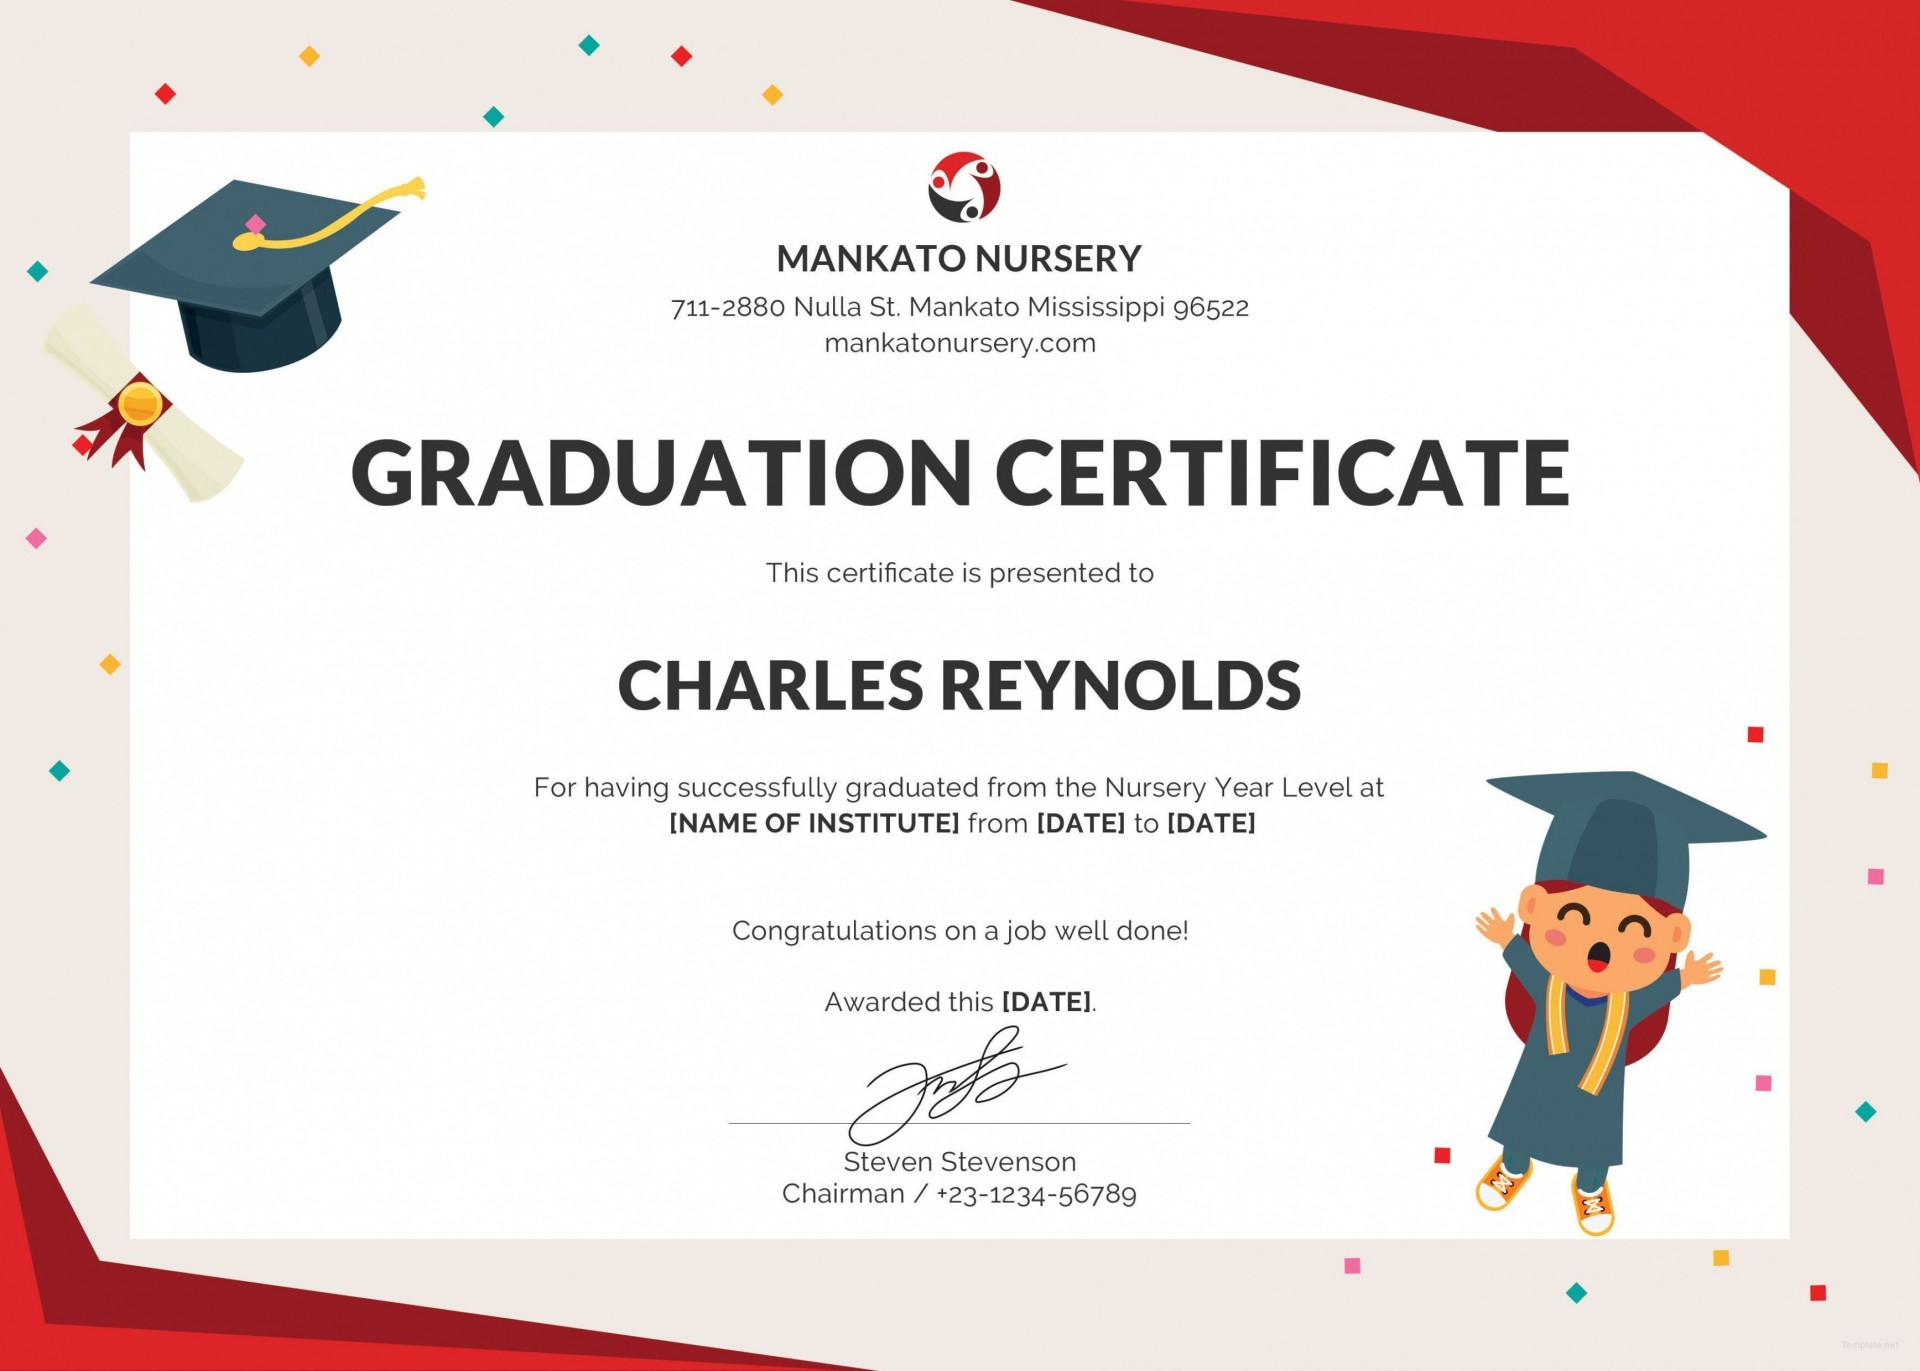 009 Incredible Degree Certificate Template Word High Definition 1920